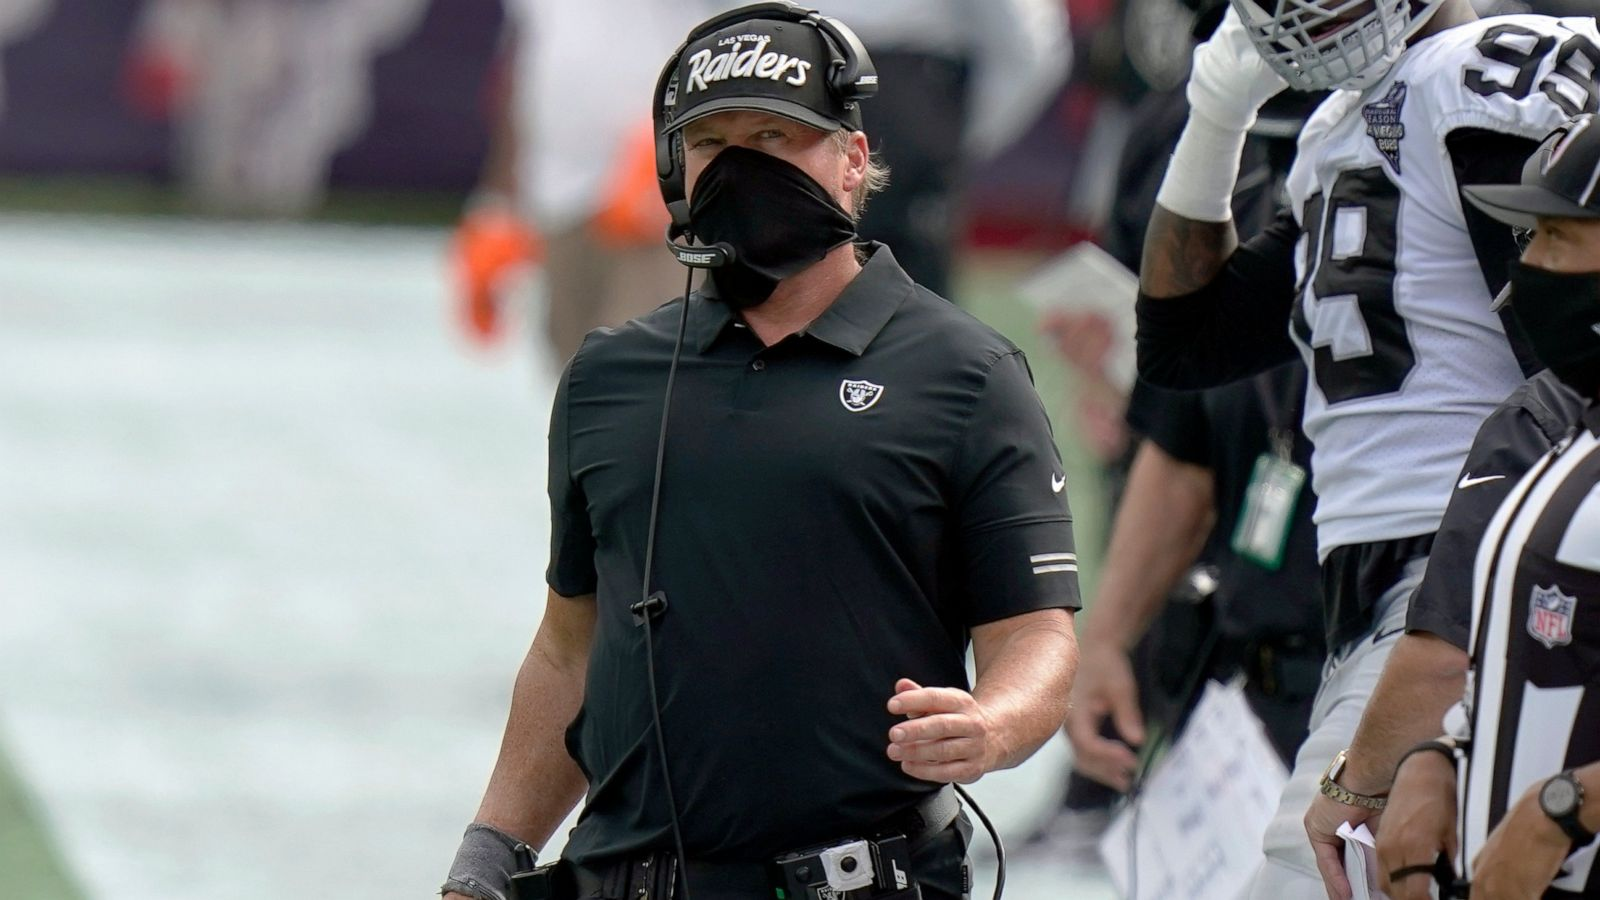 Facetime Nfl Coaches Have Learned Lessons On Face Masks Abc News